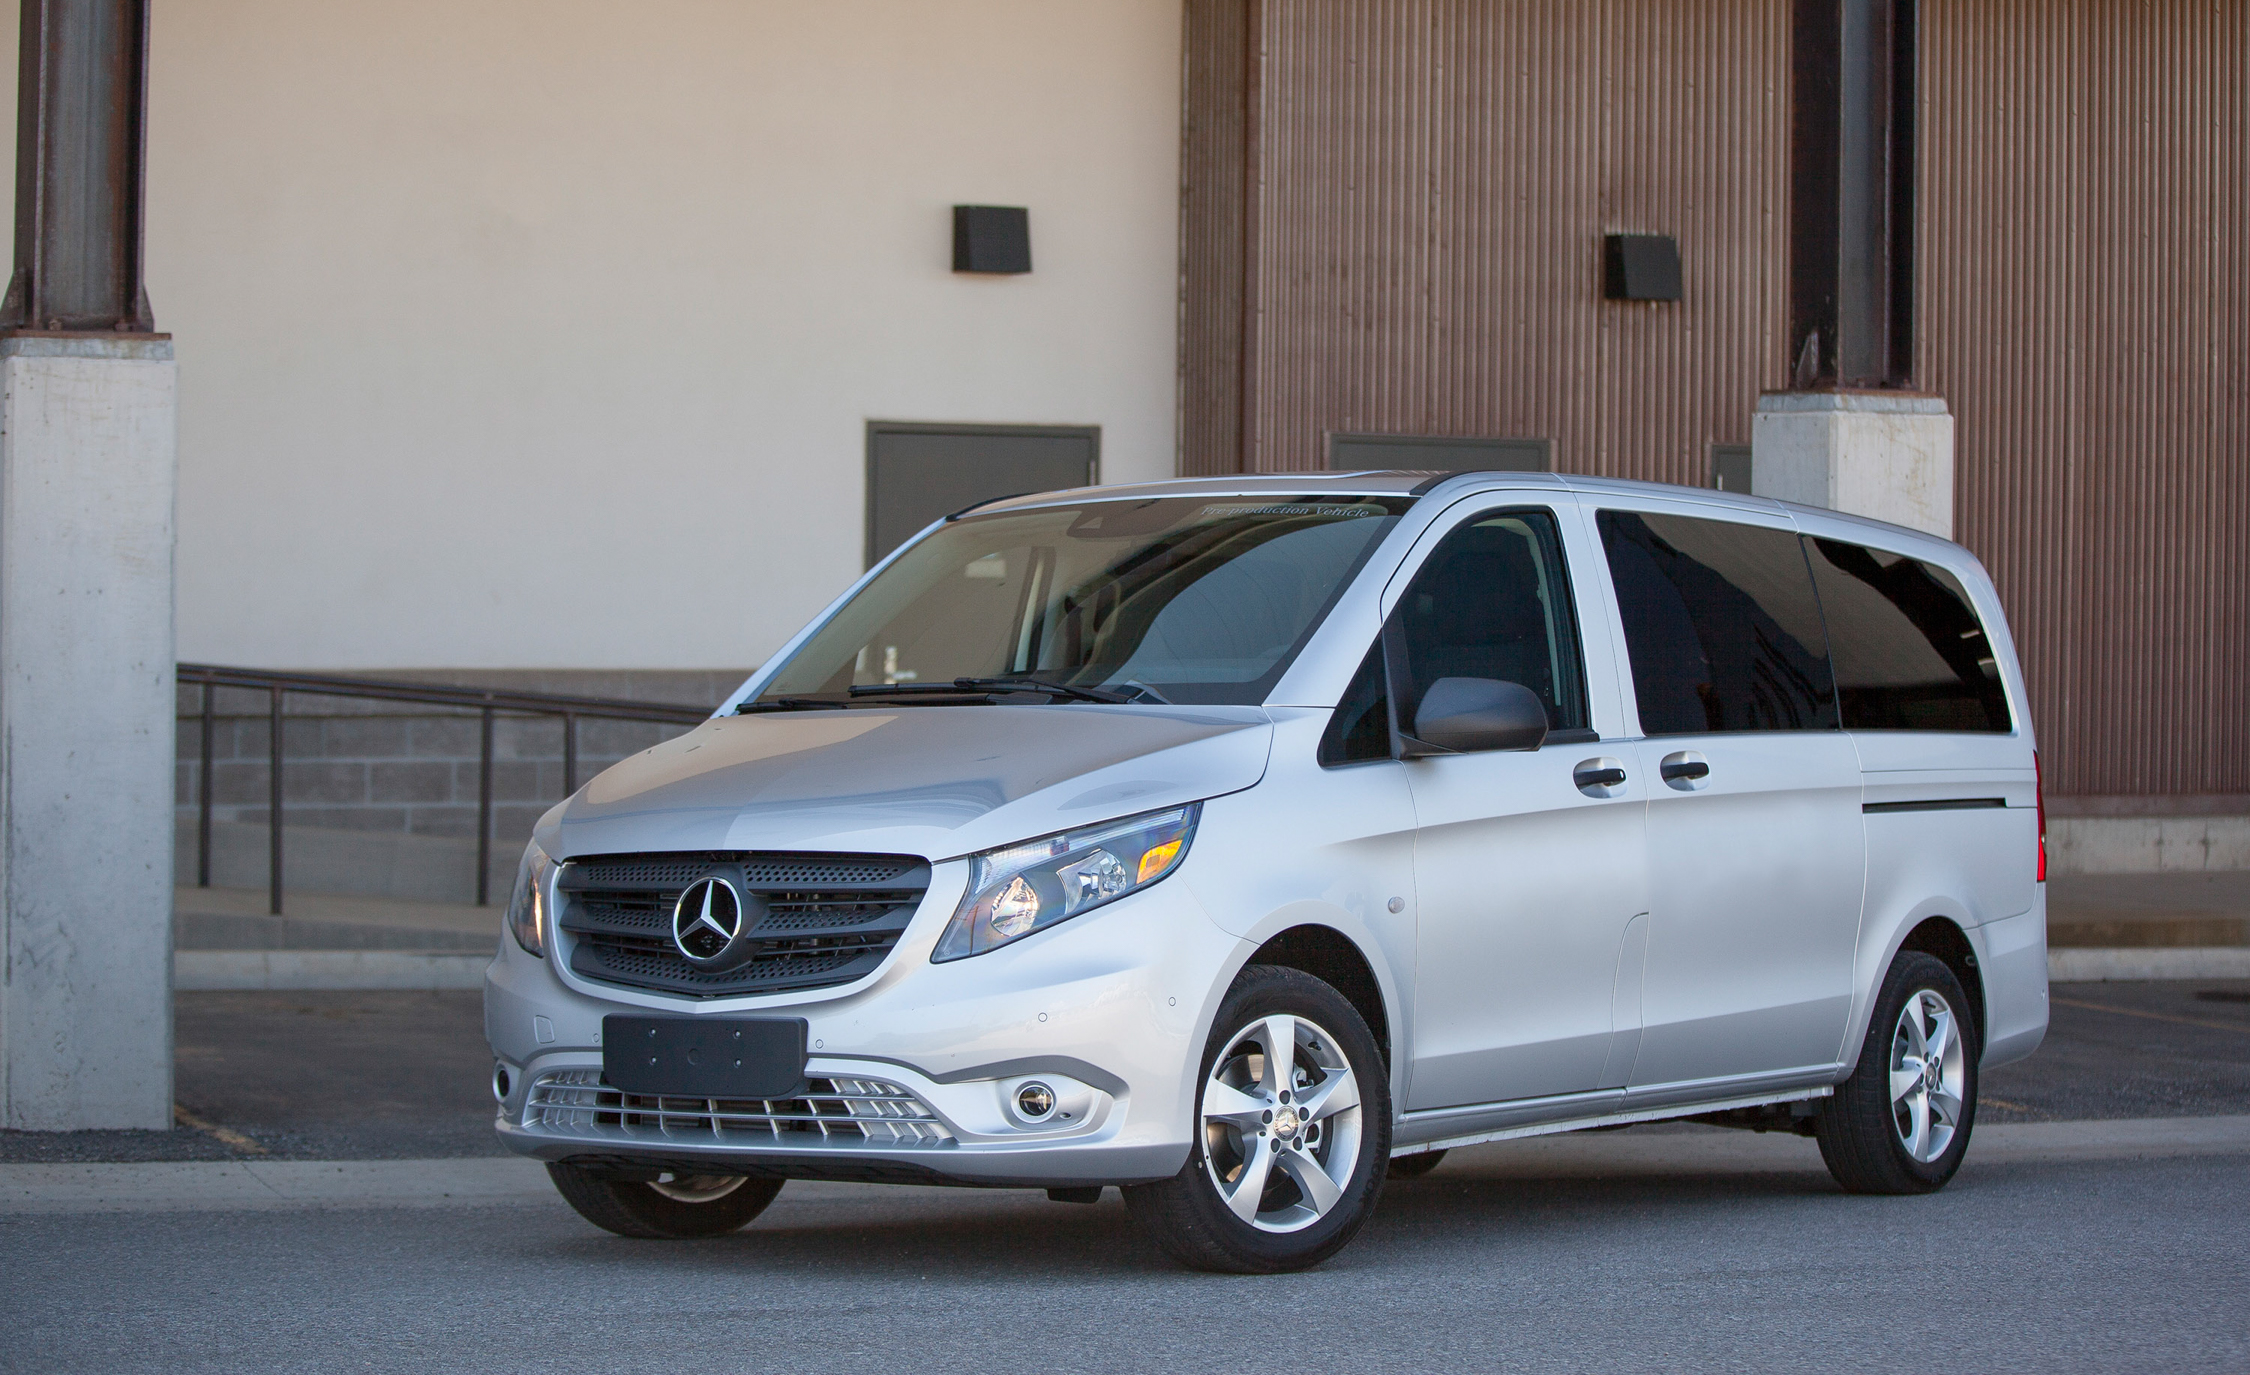 2016 Mercedes Benz Metris Van (Photo 30 of 30)